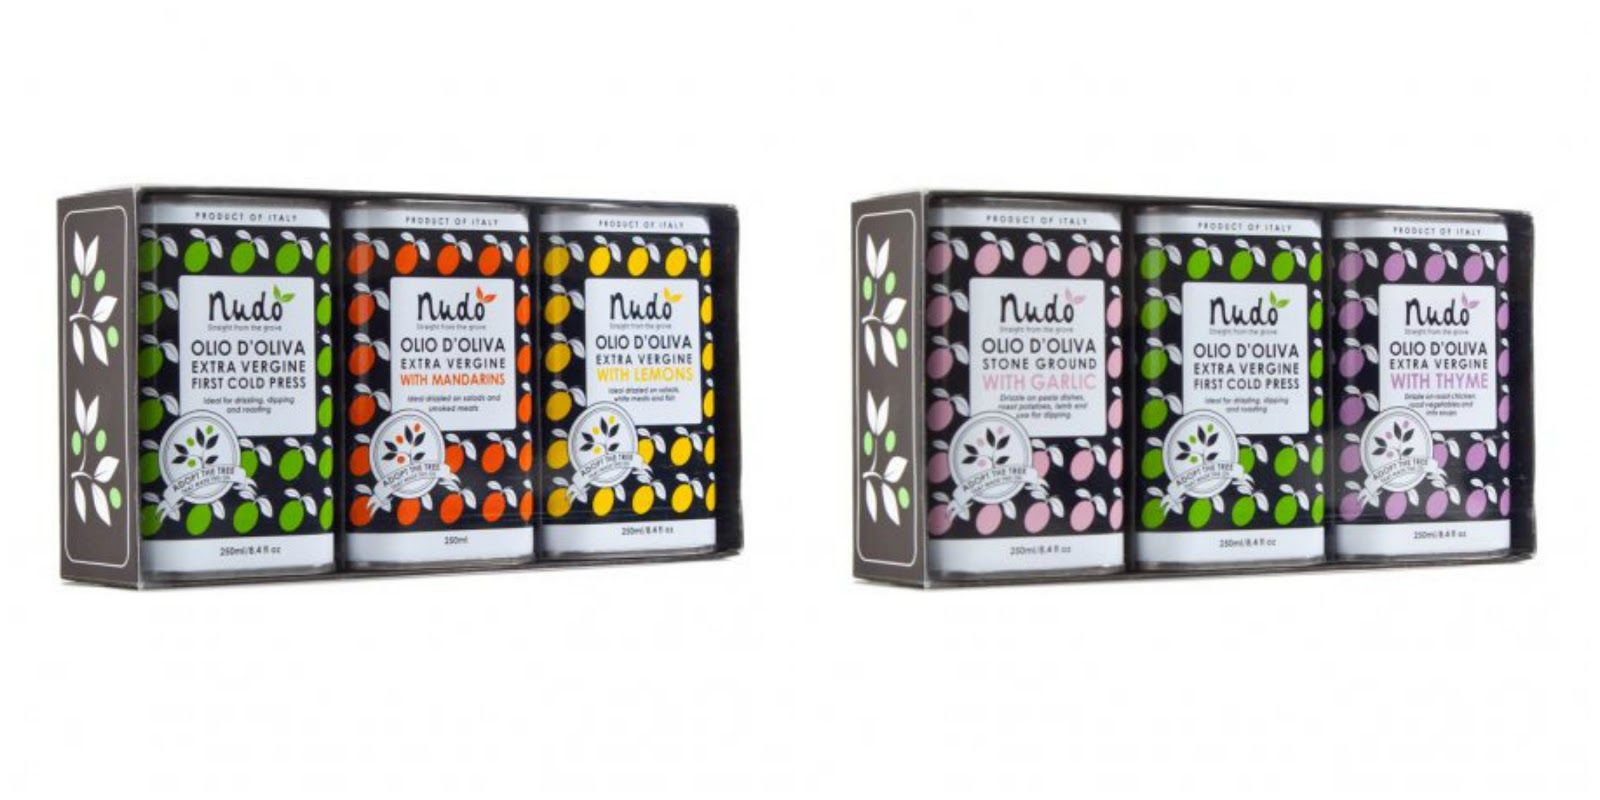 Extra vergine olive oil 'Citrus Club Gift Box' & 'The Emperor's Herbs Gift Box' byNudo.  http://t-h-i-n-g-s.blogspot.com